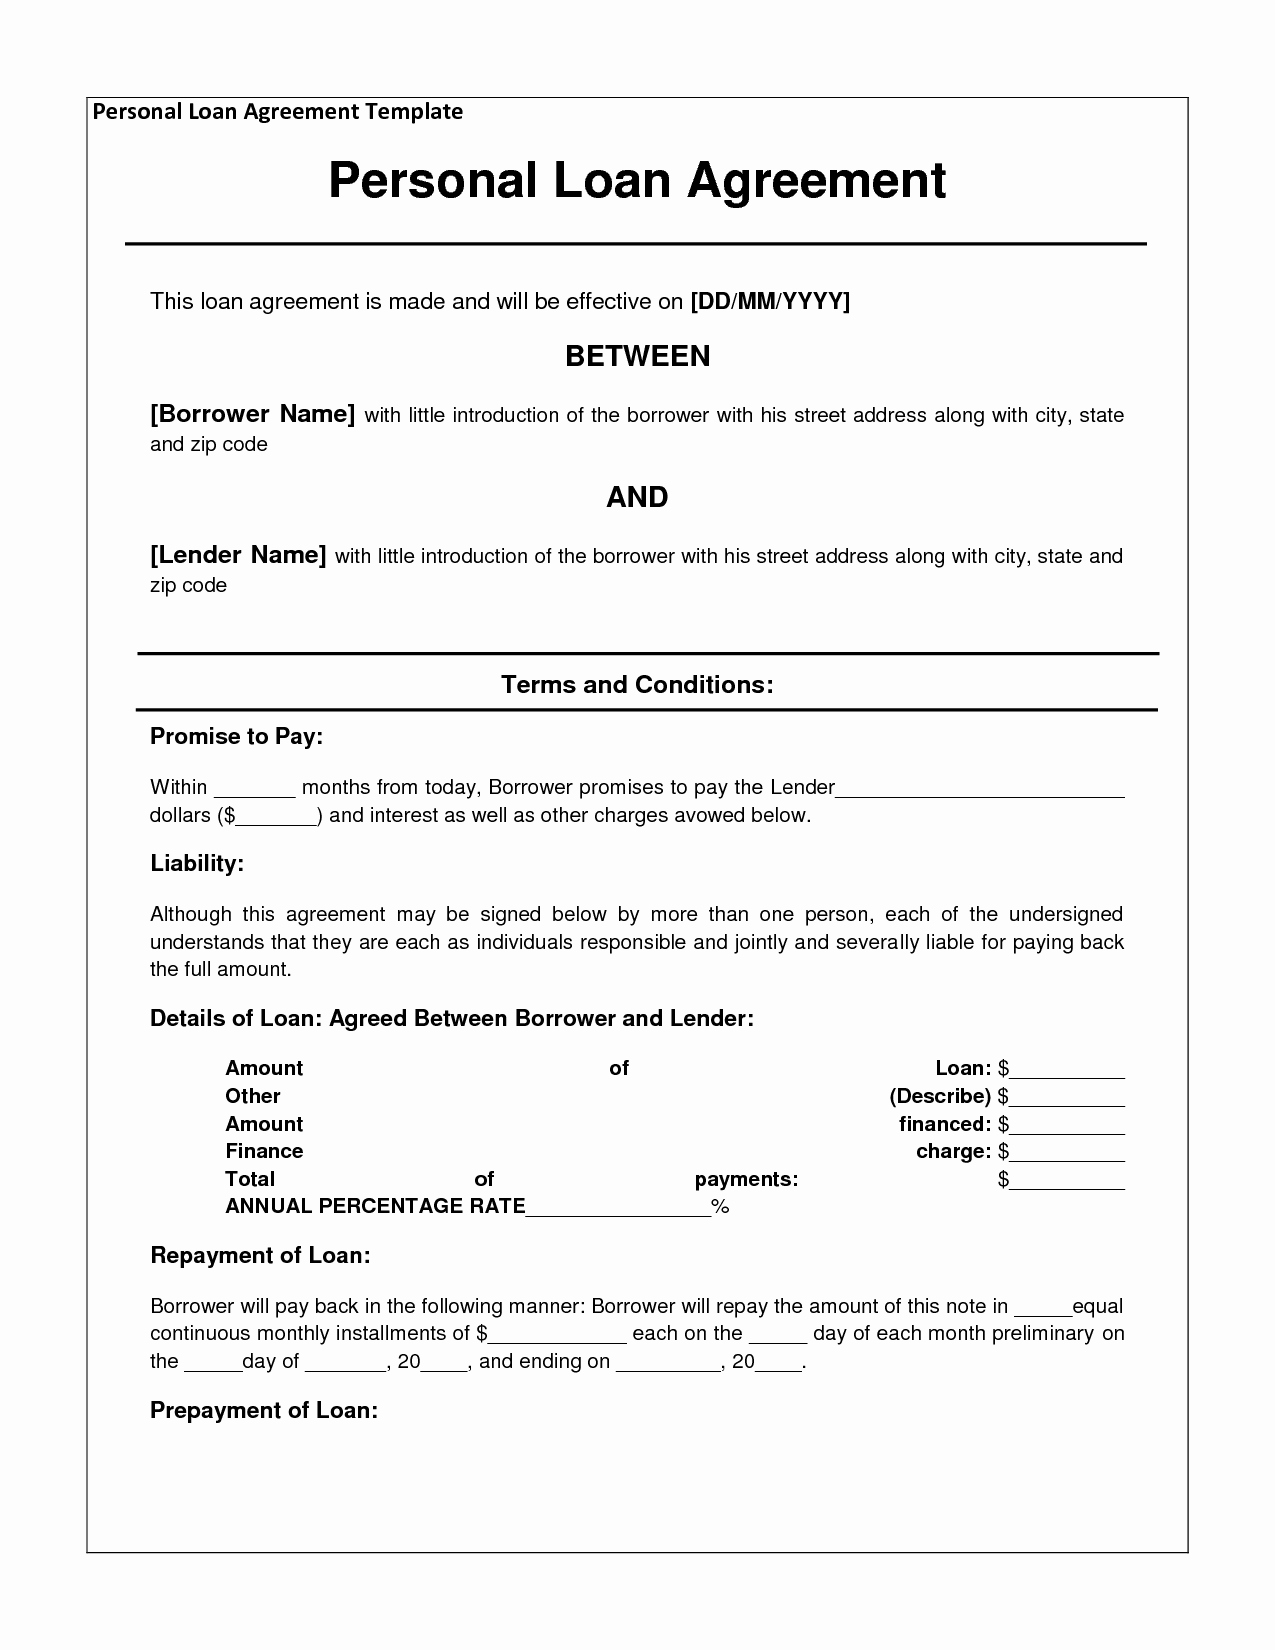 Personal Loan Document Template Unique 14 Loan Agreement Templates Excel Pdf formats